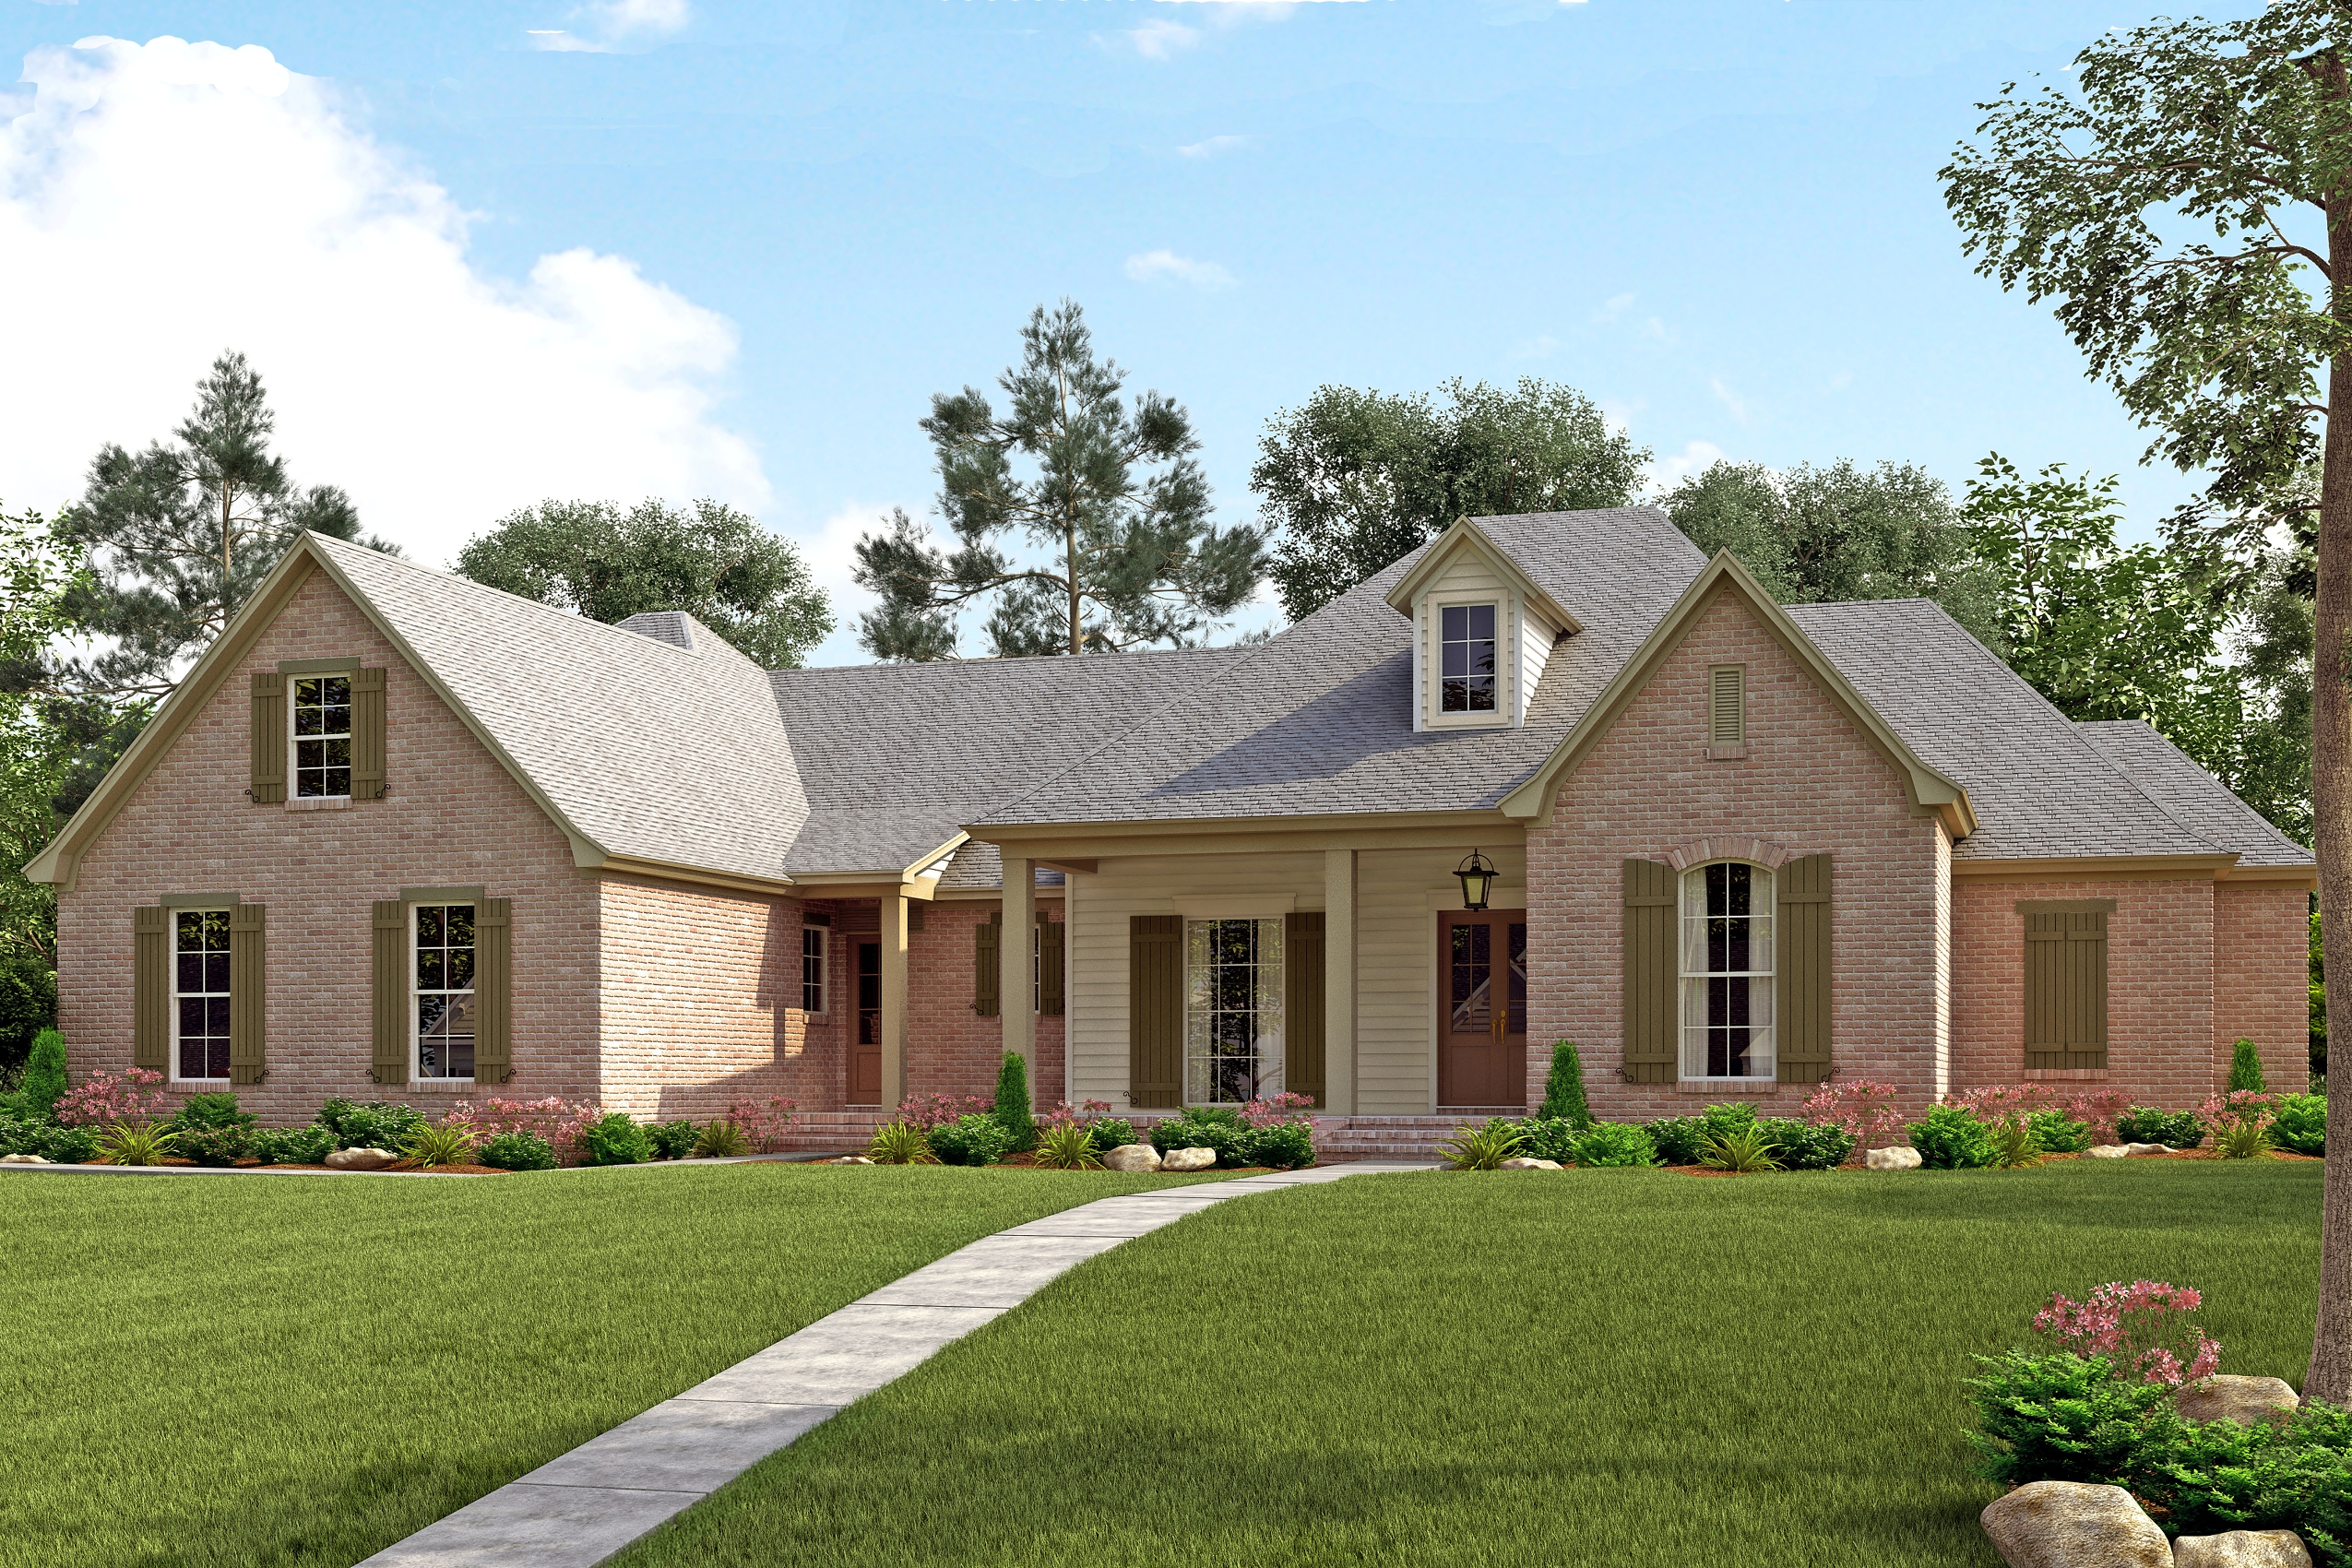 French house plan 142 1139 4 bedrm 3195 sq ft home for Country houseplans